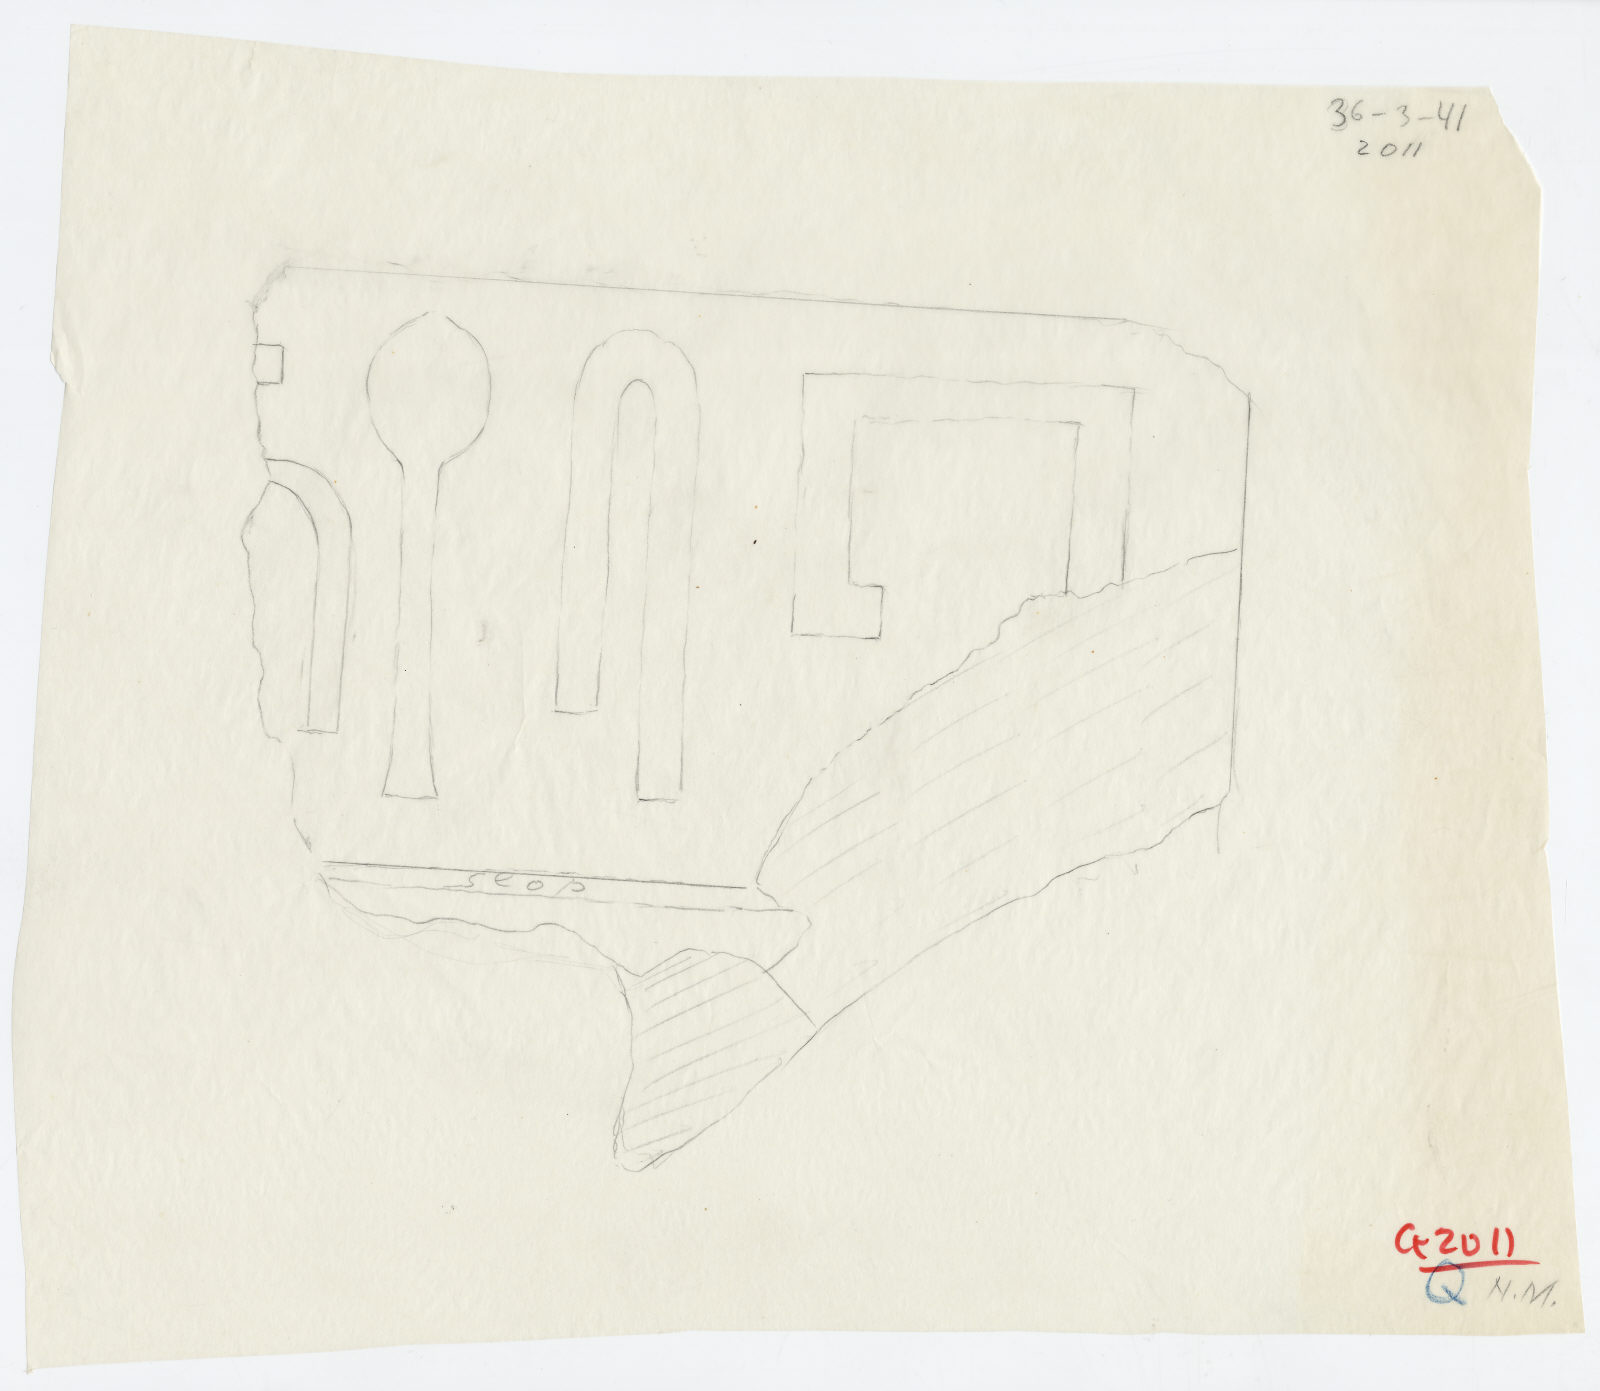 Drawings: G 2011: fragment of lintel (?)